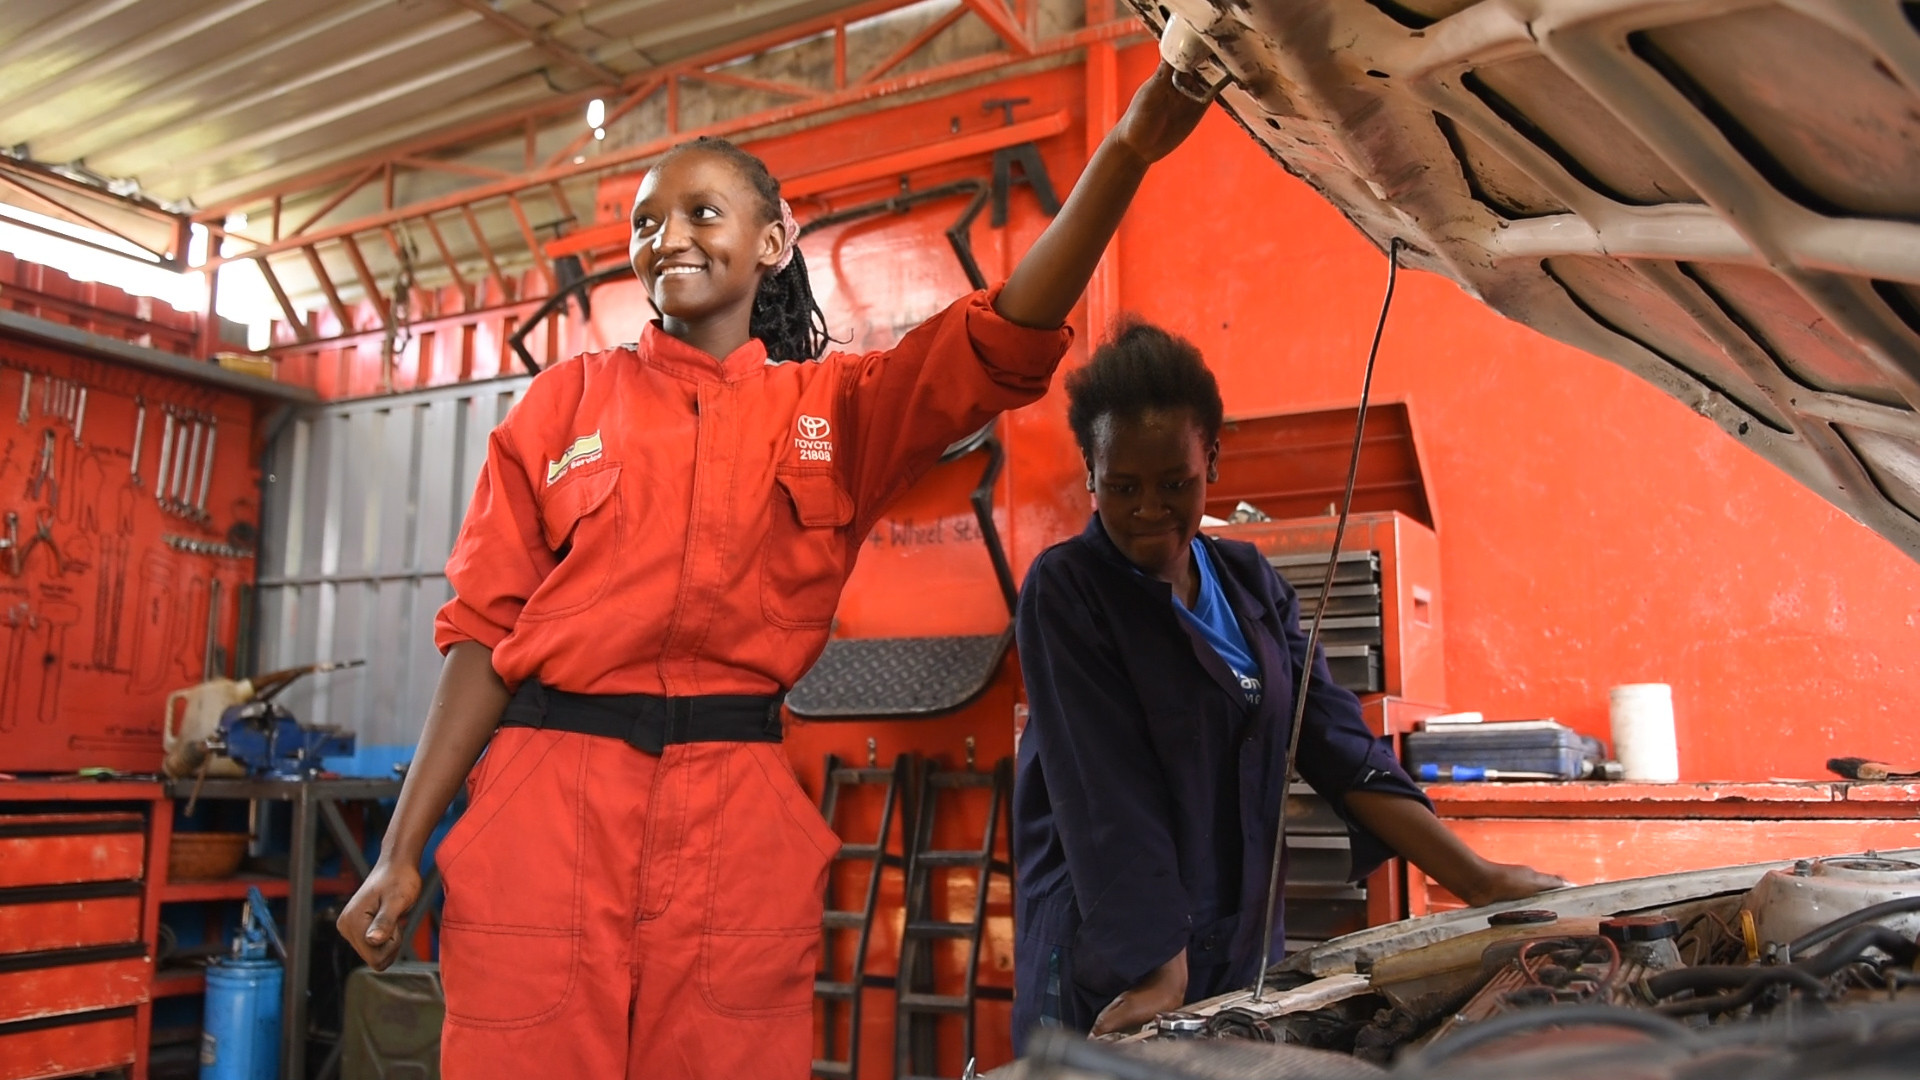 A few years ago, Peninah had the idea to train young women as auto mechanics. She knew the trade would offer them a chance to earn a living wage and believed women working in the male-dominated industry would actually have an edge. Photo: Kate Adelung/CARE